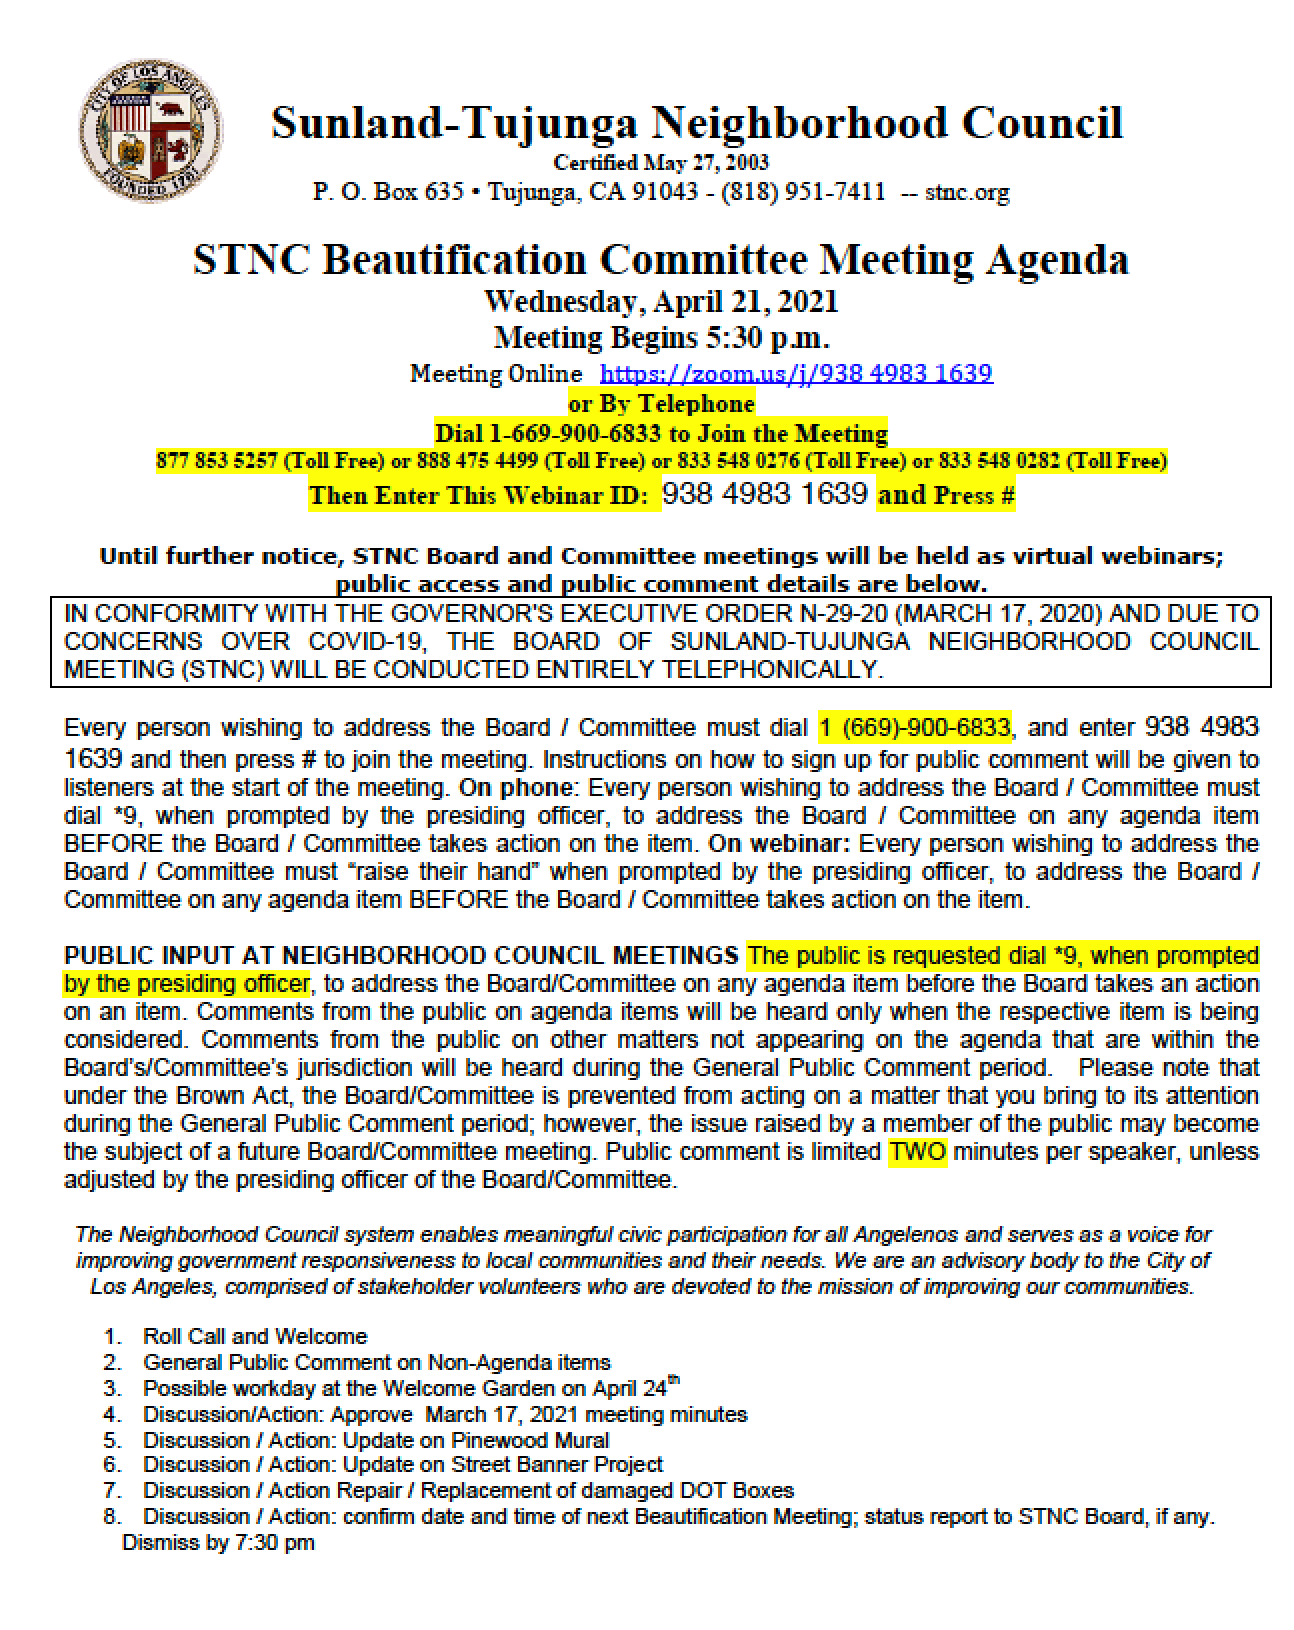 STNC Beautification Committee Meets Wednesday, April 21